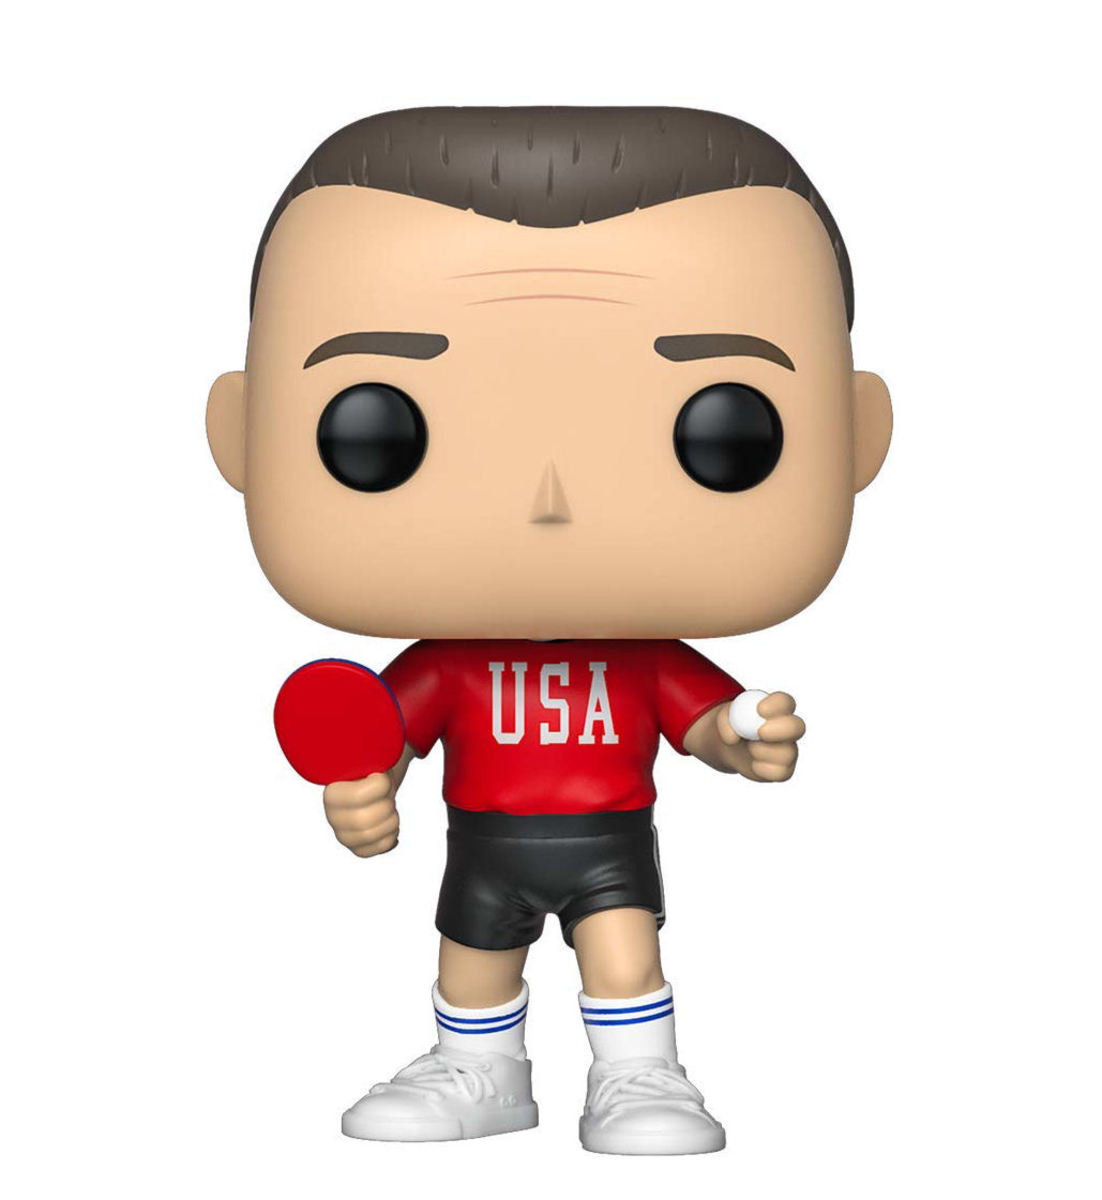 figurka Forrest Gump - POP! - Ping Pong Outfit - FK40205